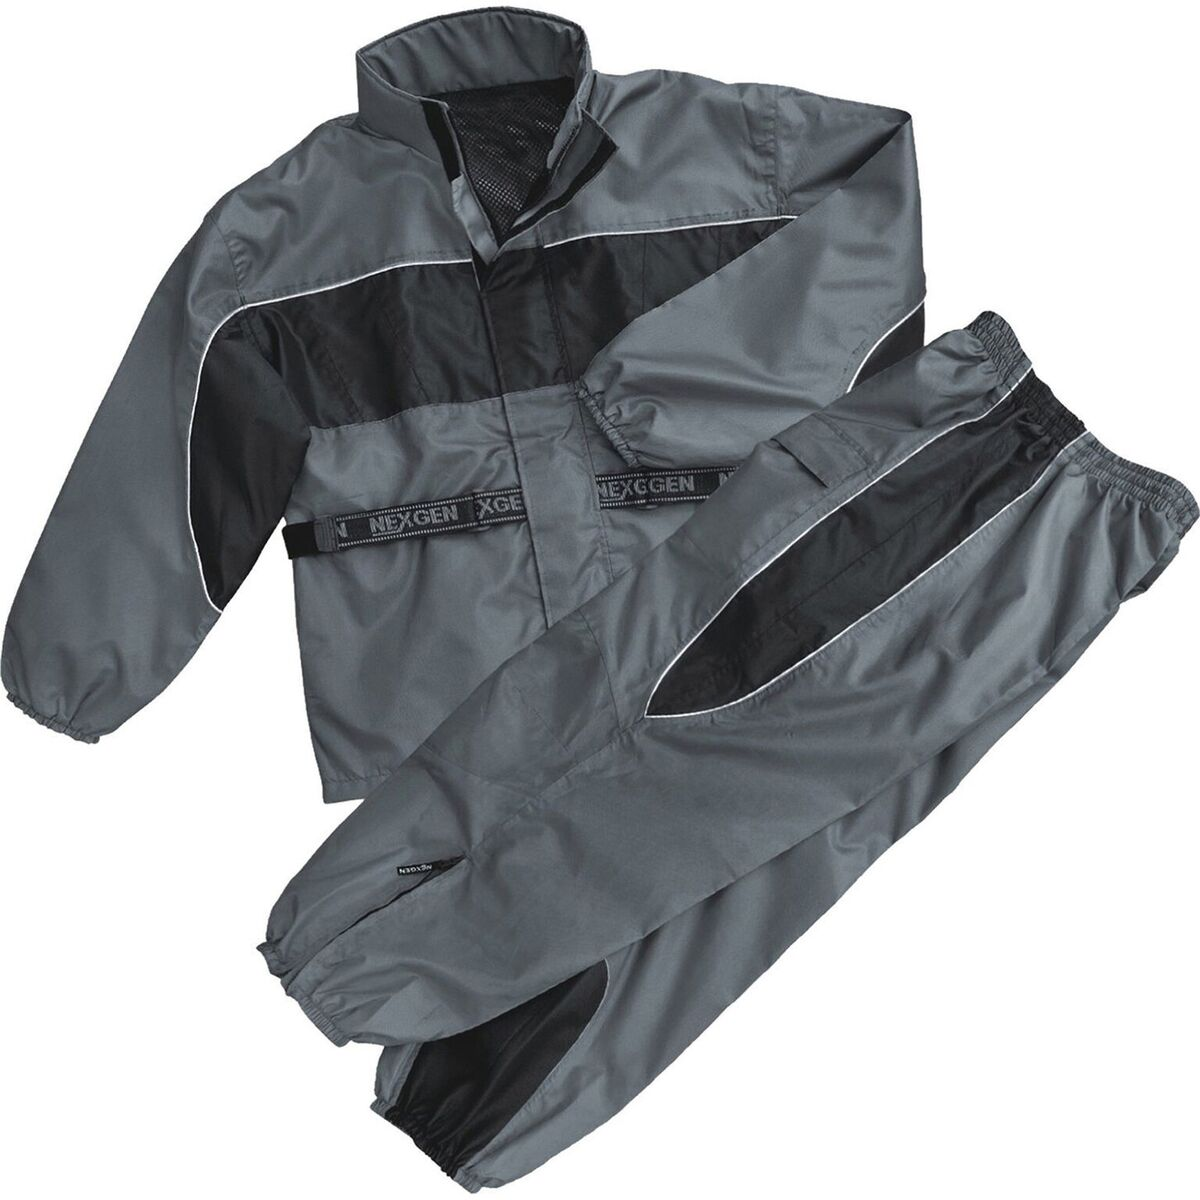 Men's Black & Grey Rain Suit Water Resistant with Reflective Piping